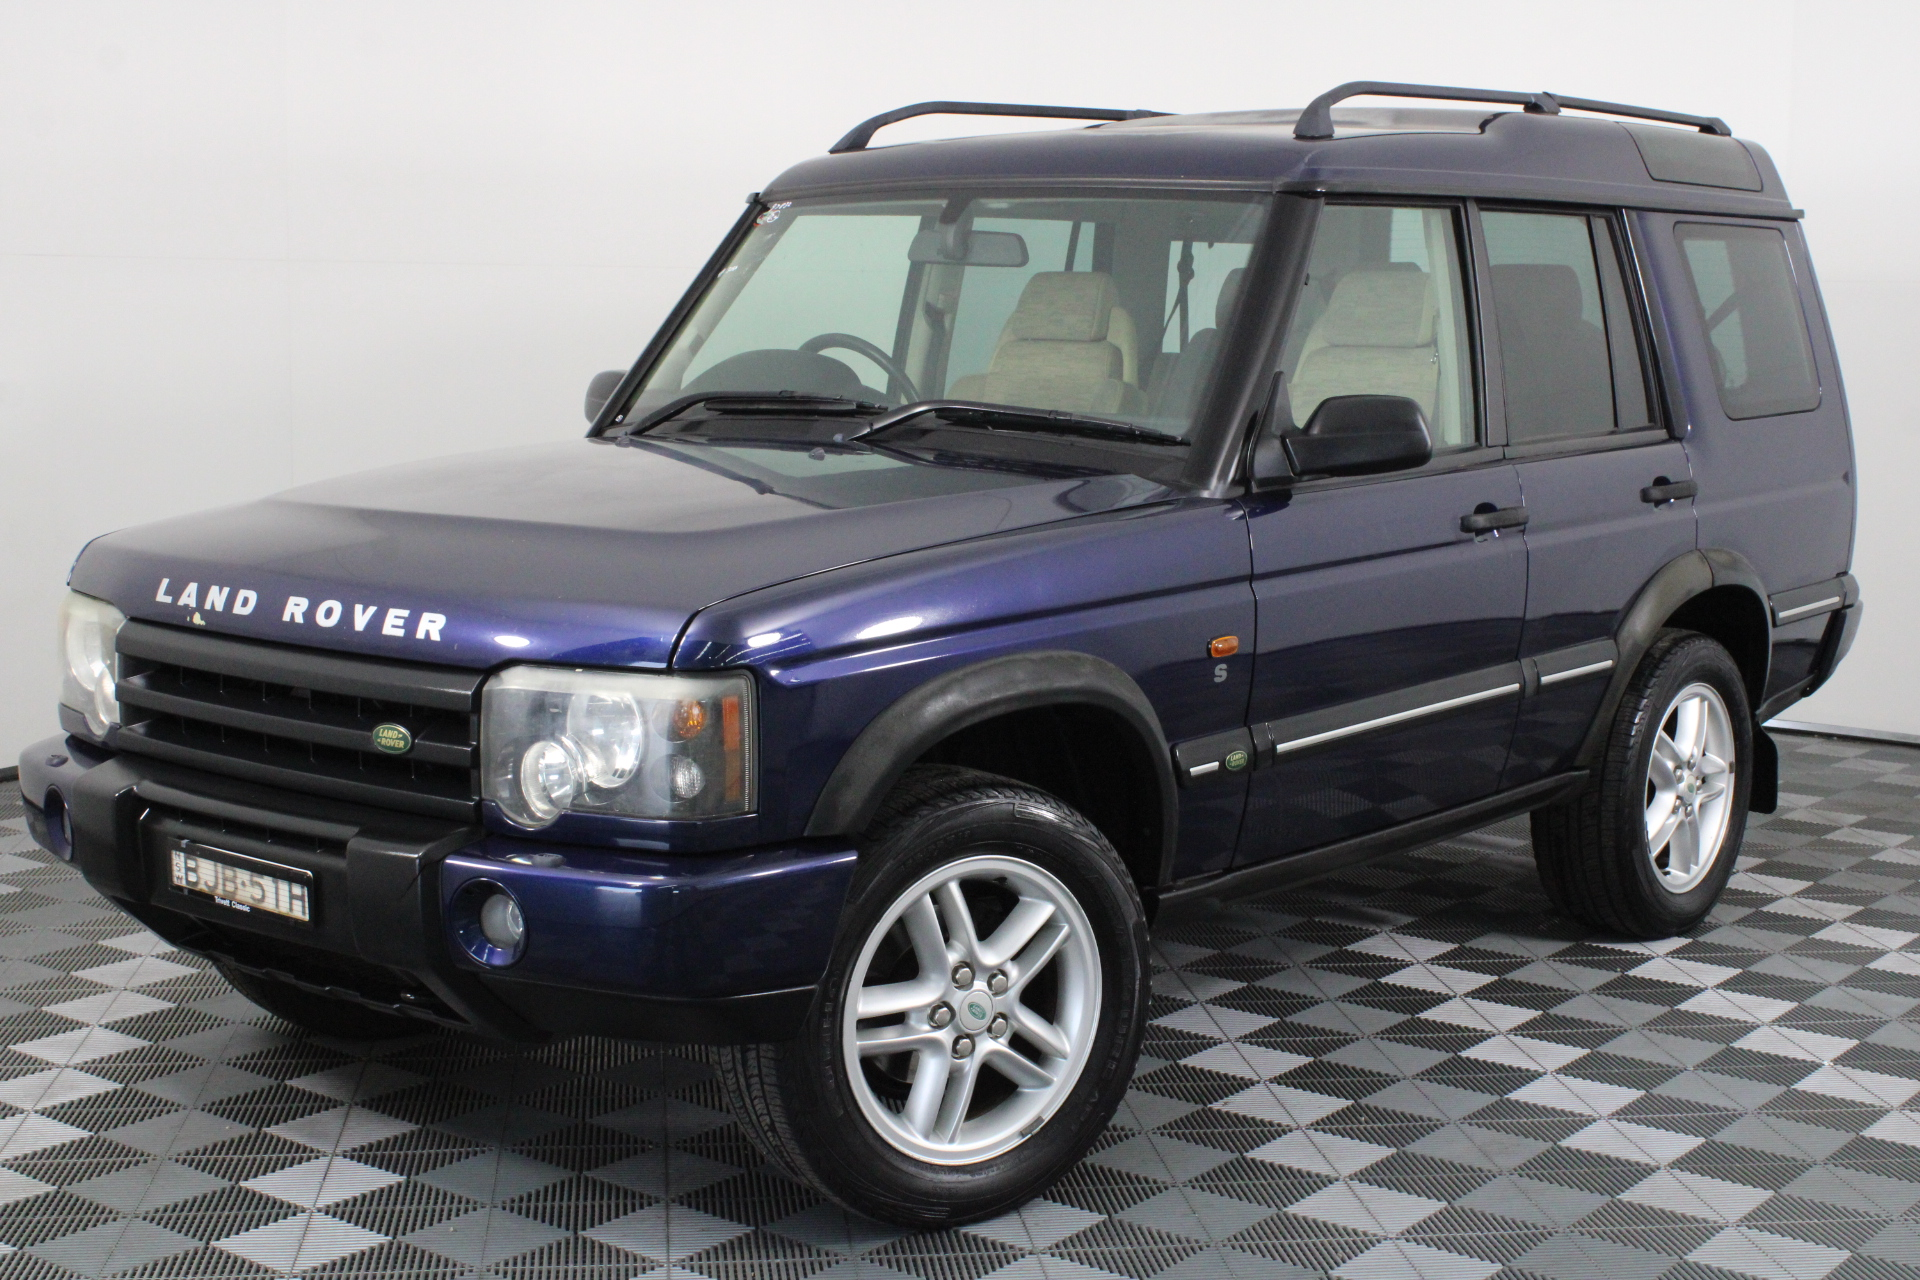 2003 Land Rover Discovery S (4x4) Automatic 7 Seats Wagon